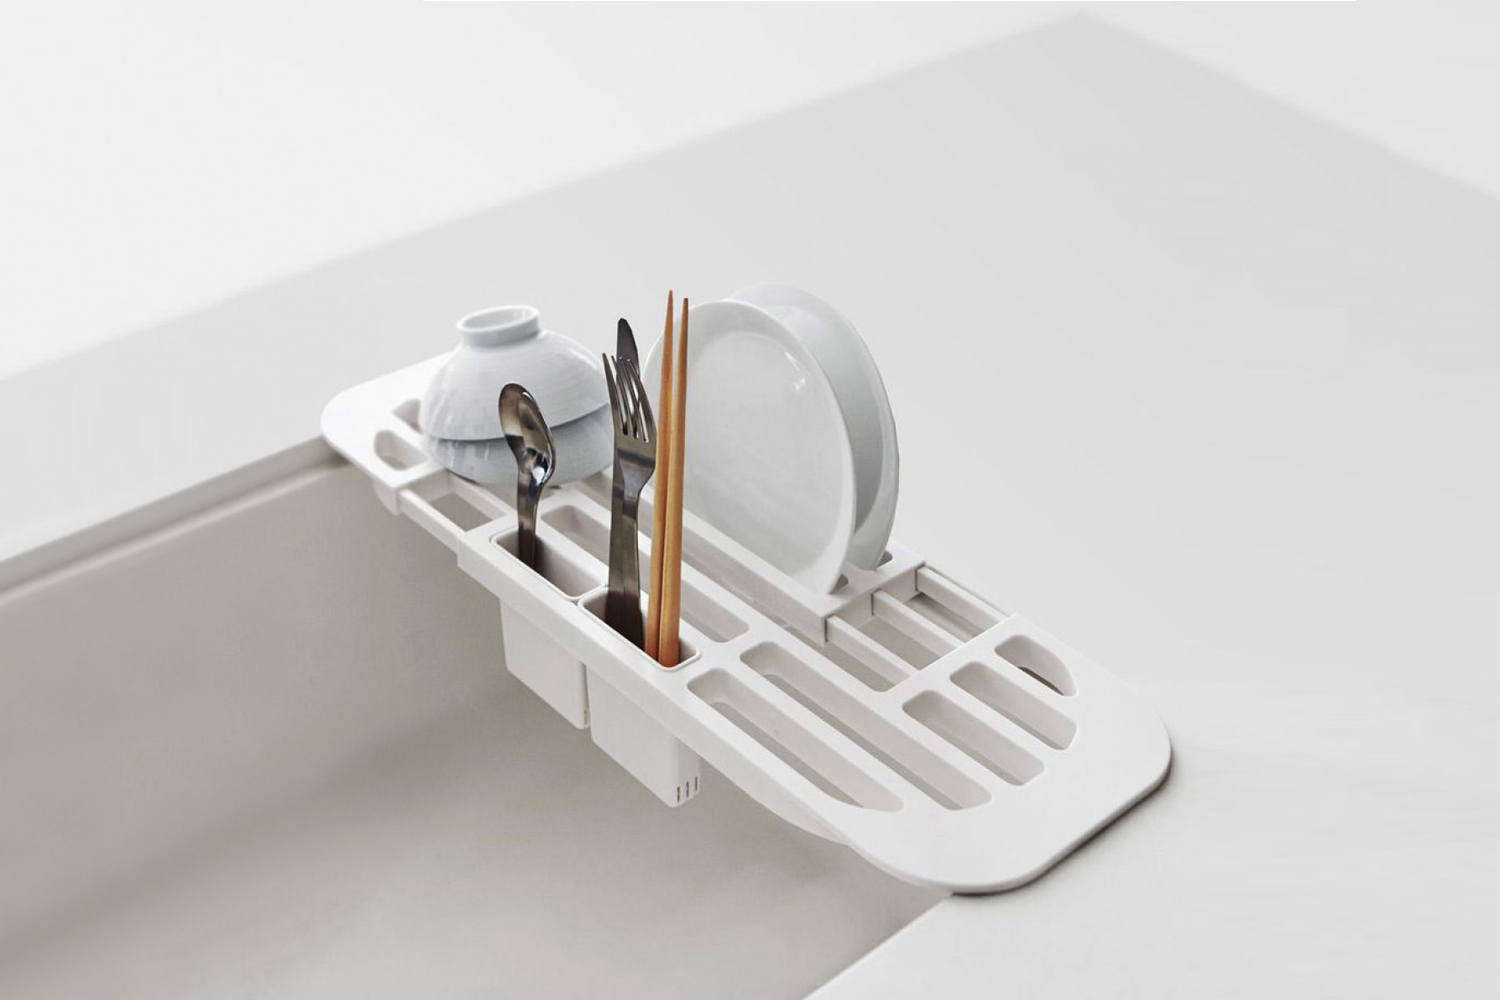 The Yamazaki Tower Sink Drainer fits across the sink (it expands or contracts to fit different sizes) and is made of heavy plastic. It comes with two removable compartments for utensils and the whole thing can be used to rinse vegetables after washing; $35 AUD at Father Rabbit.